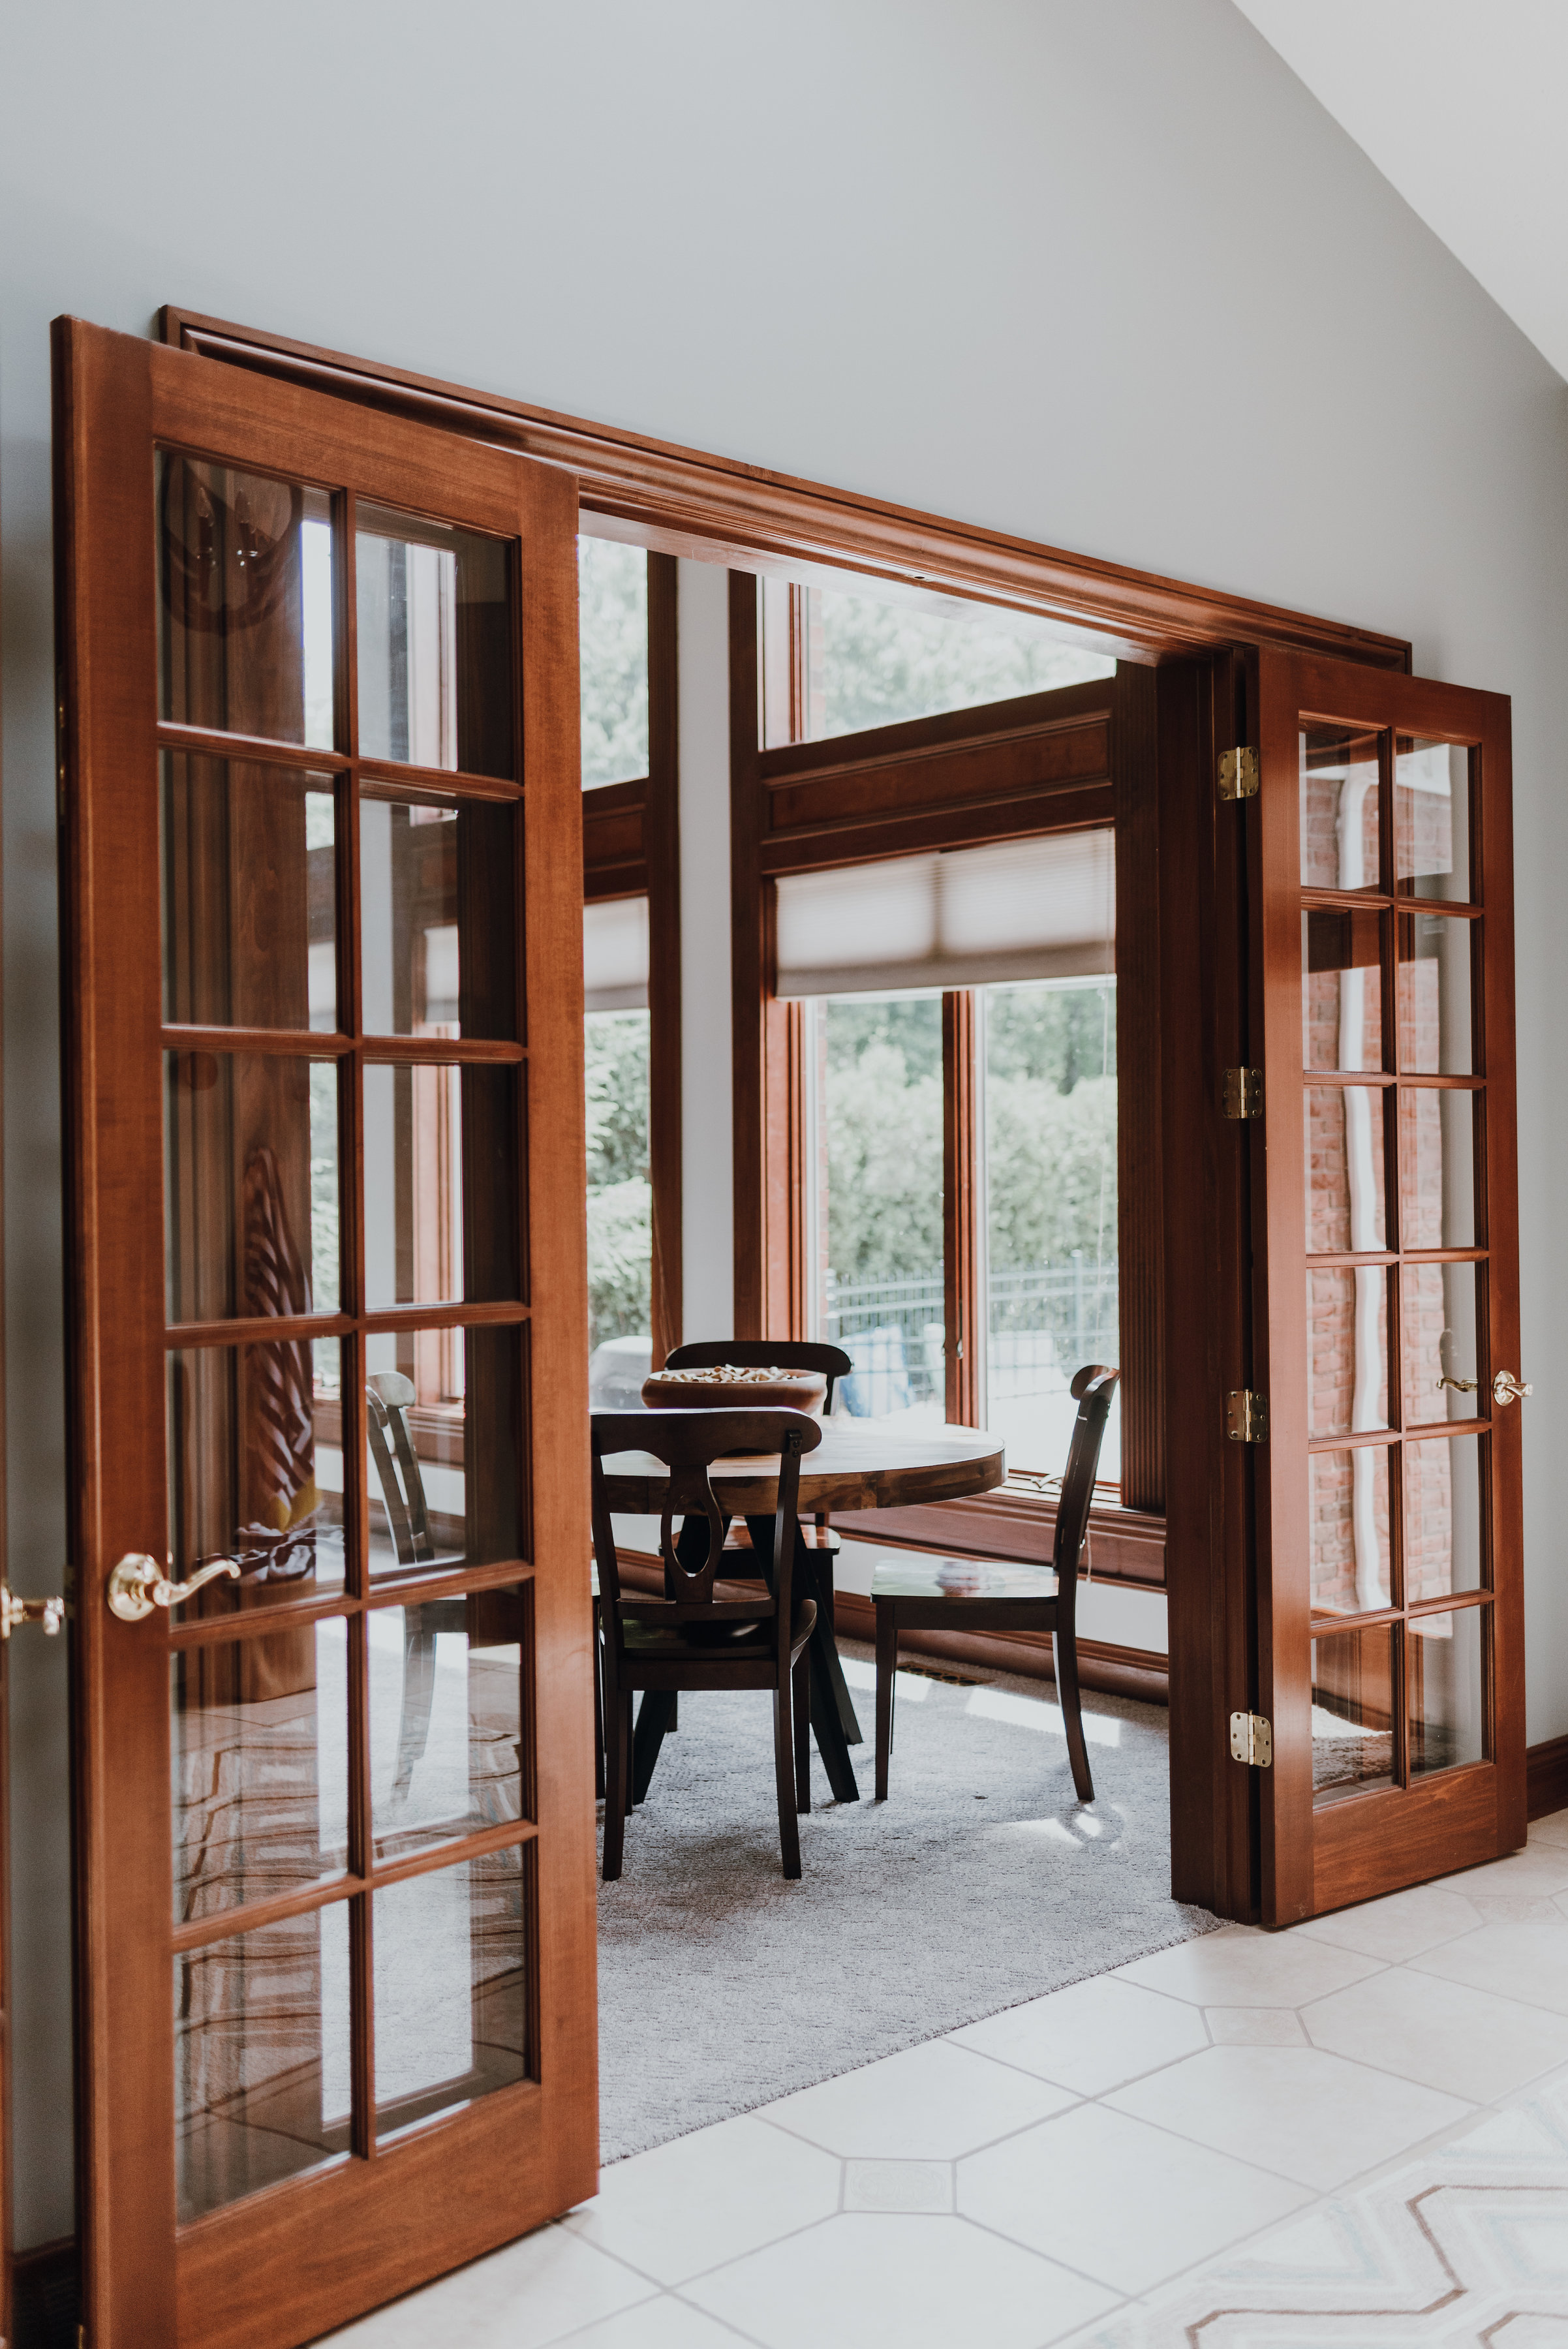 - The estate as it existed included a vast center entrance with grand staircase and heavy, opulent light fixtures. Linda believed transitional lighting and muted palette was needed to achieve a more livable and inviting space.